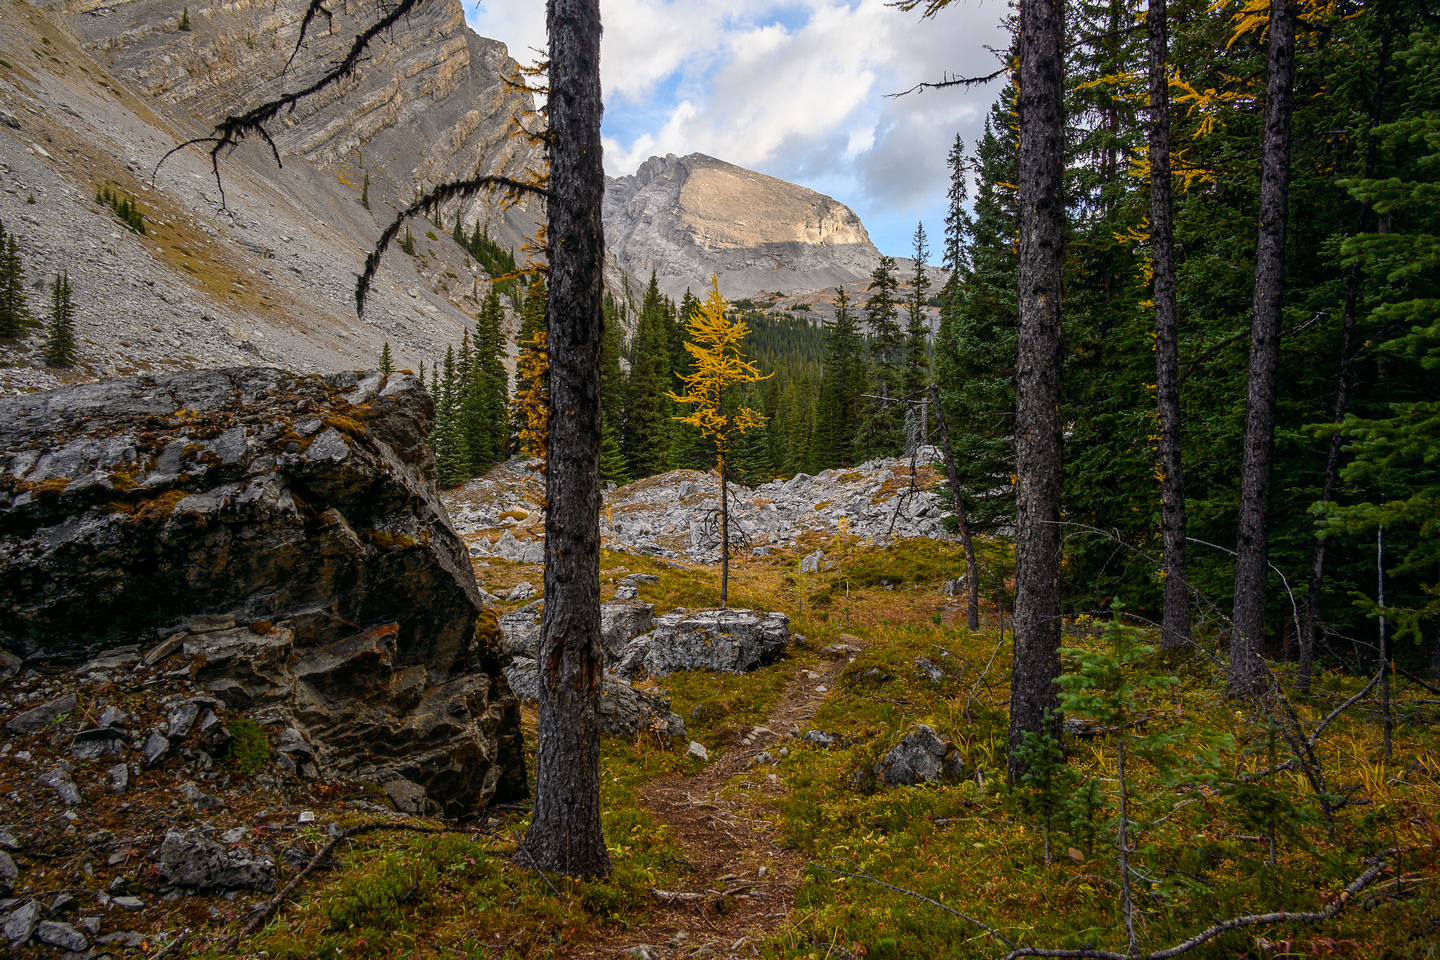 Hiking up James Walker Creek, entering a small larch forest.